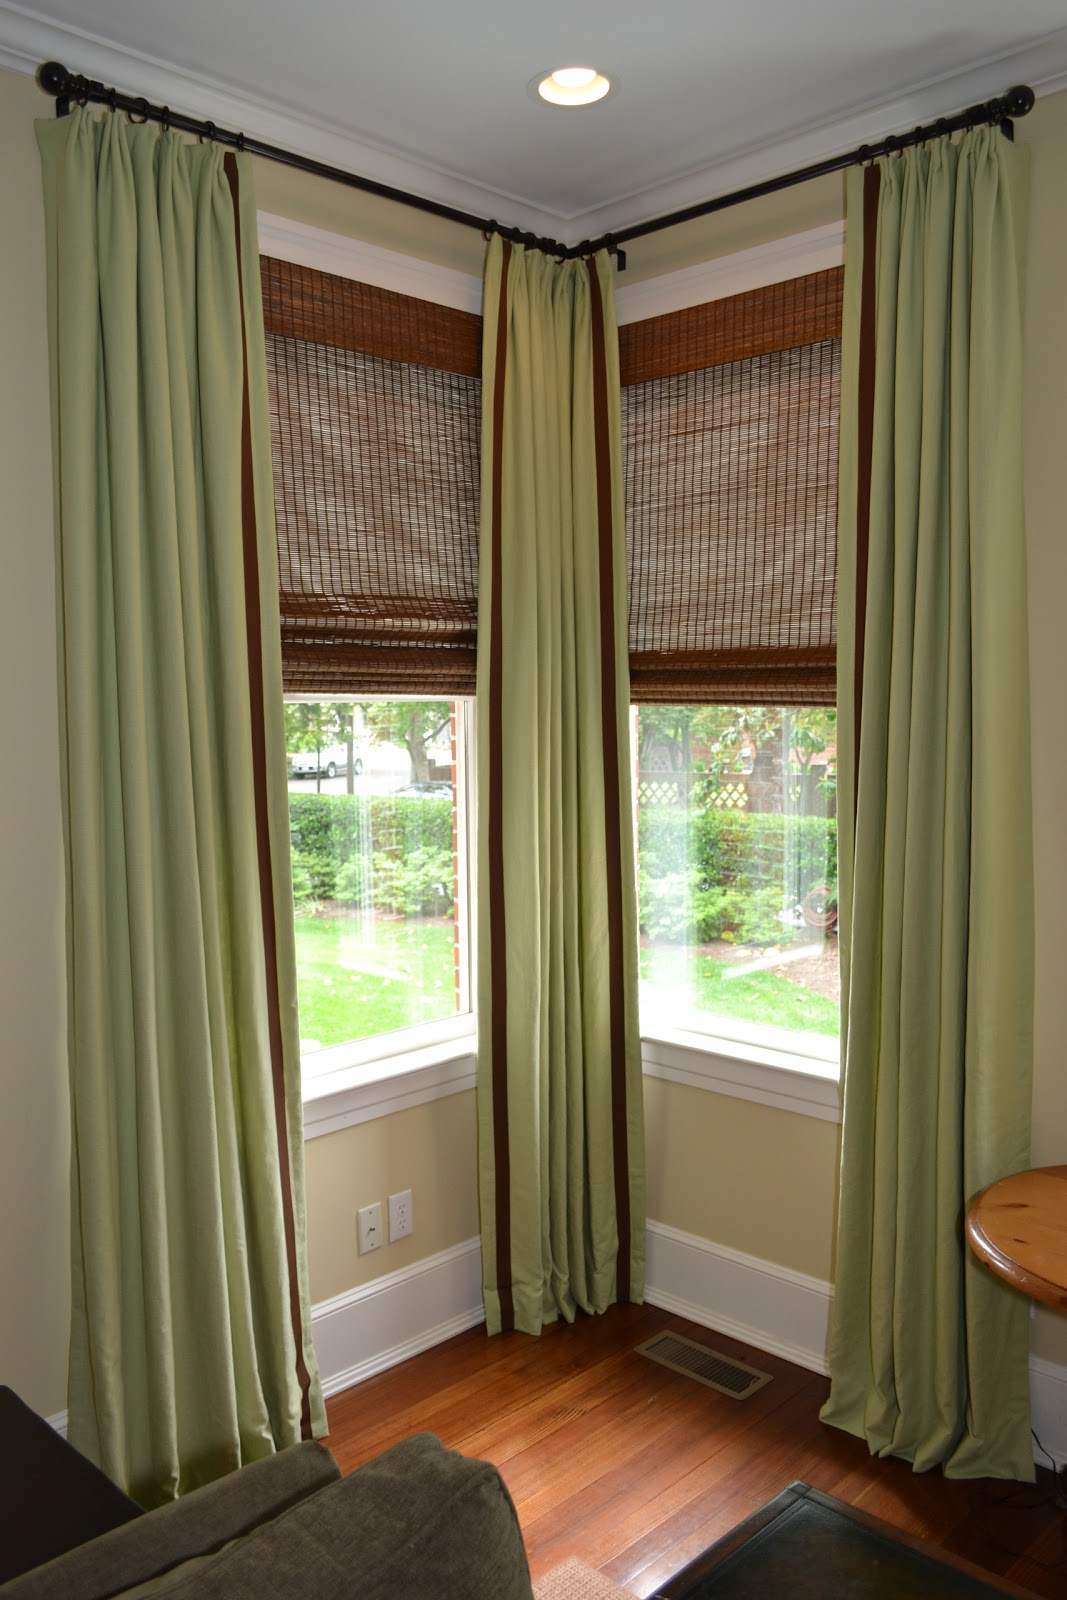 Window Curtain Design Ideas: LUCY WILLIAMS INTERIOR DESIGN BLOG: BEFORE AND AFTER